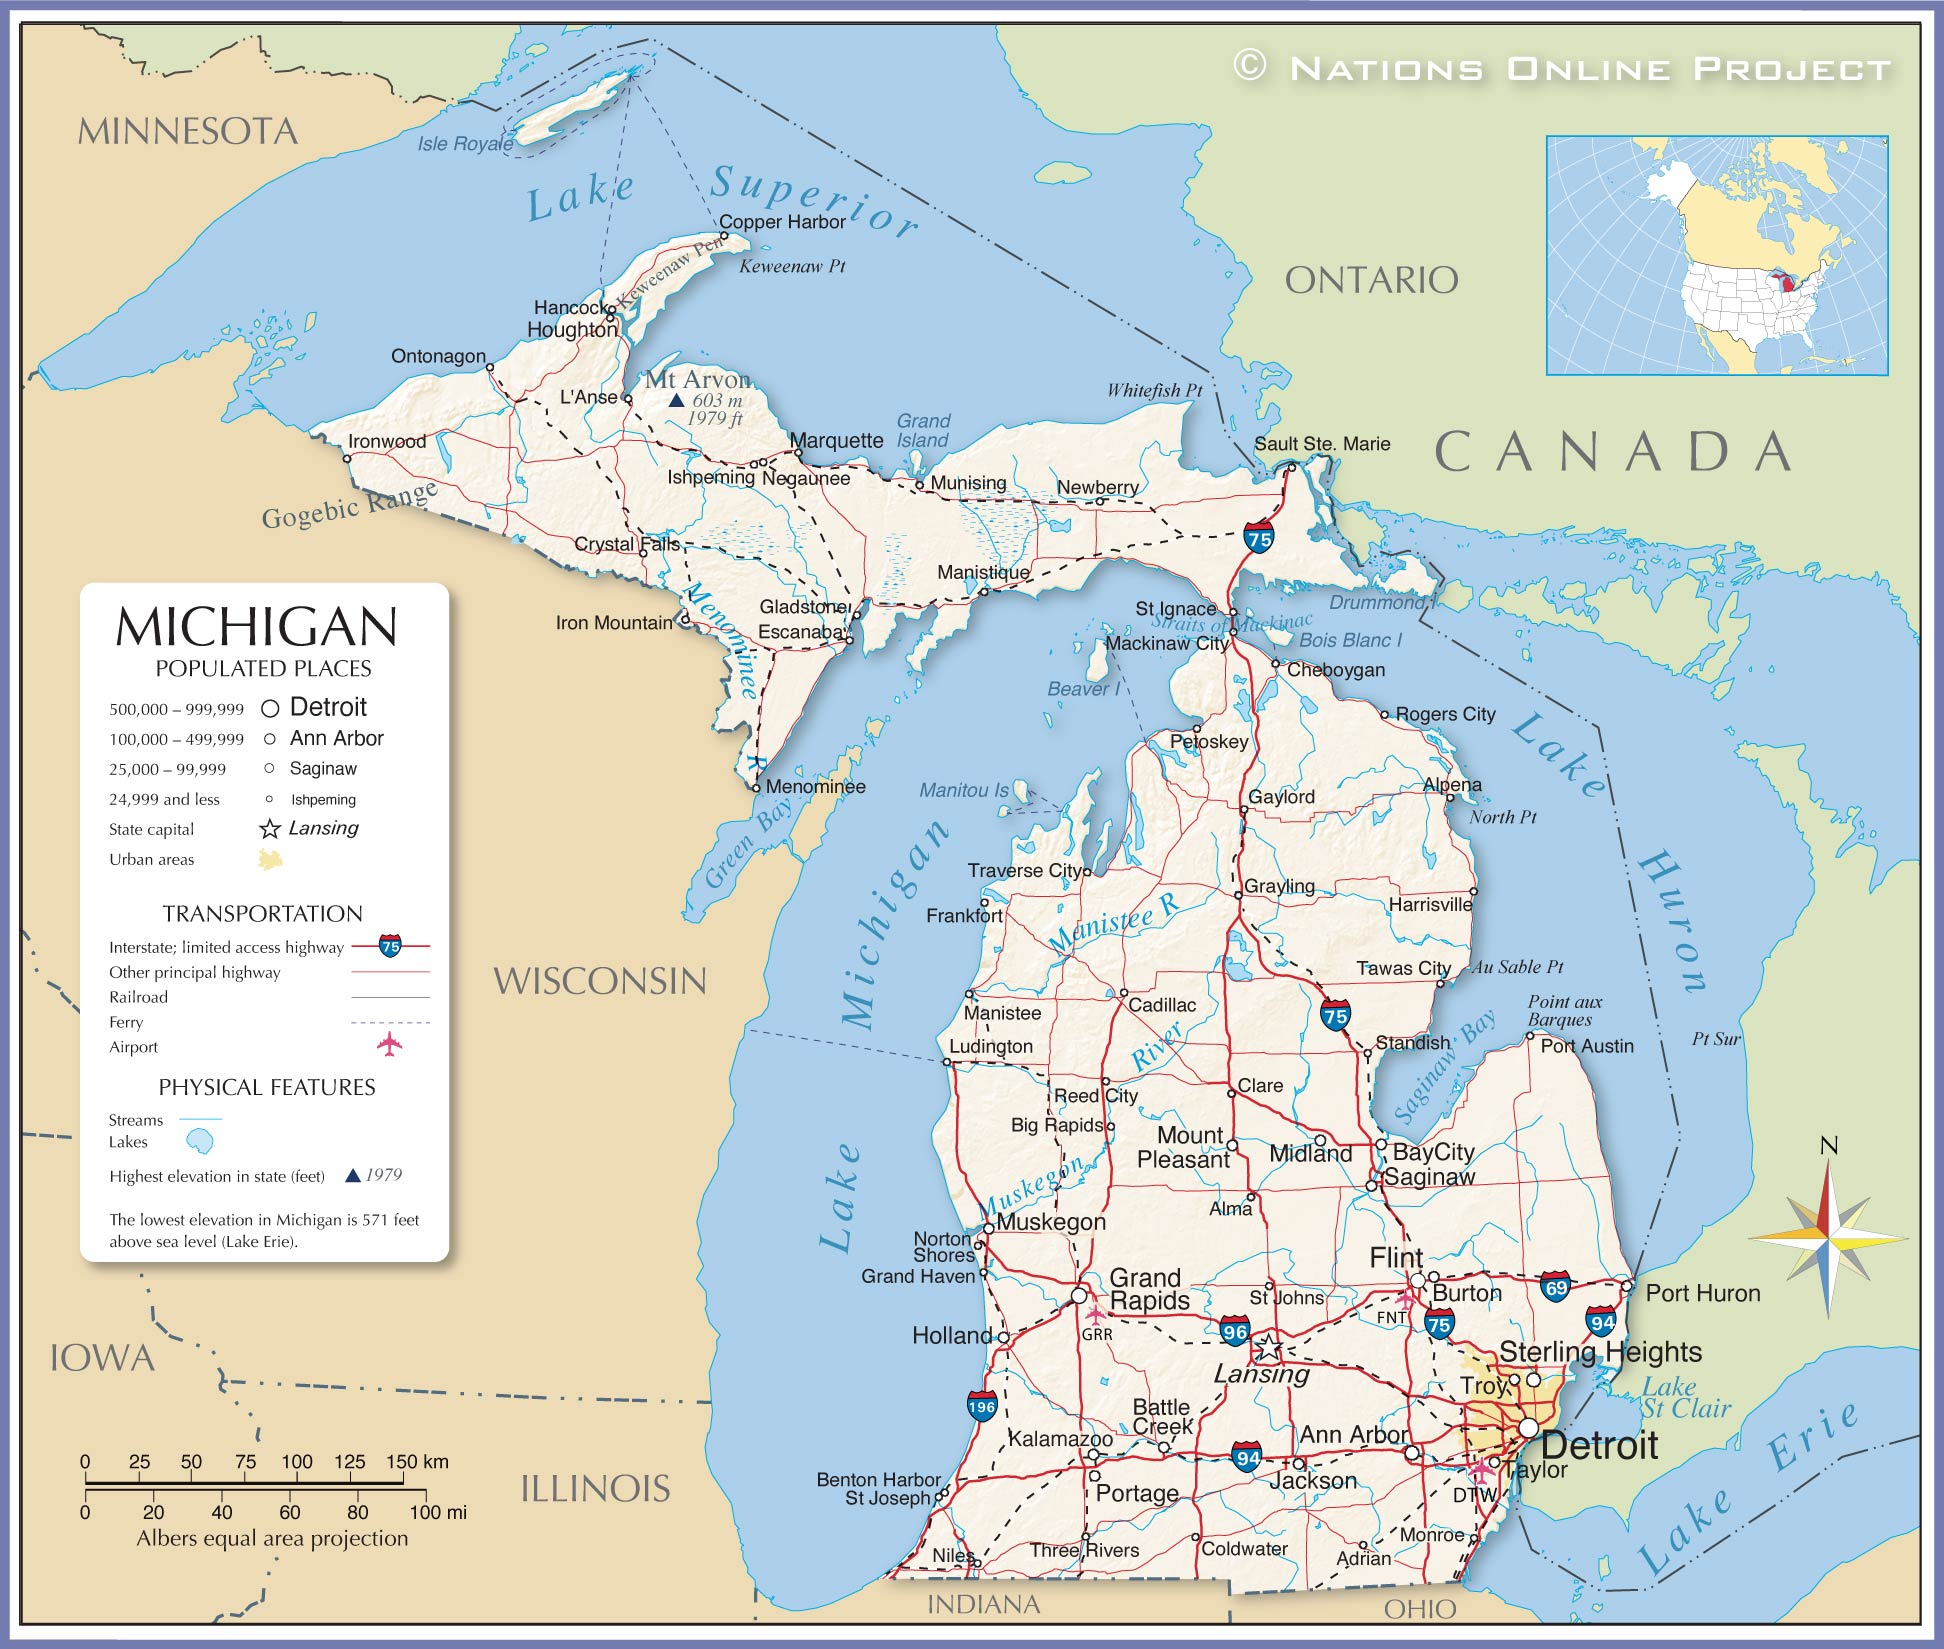 Reference Map Of Michigan USA Nations Online Project - Micigan map